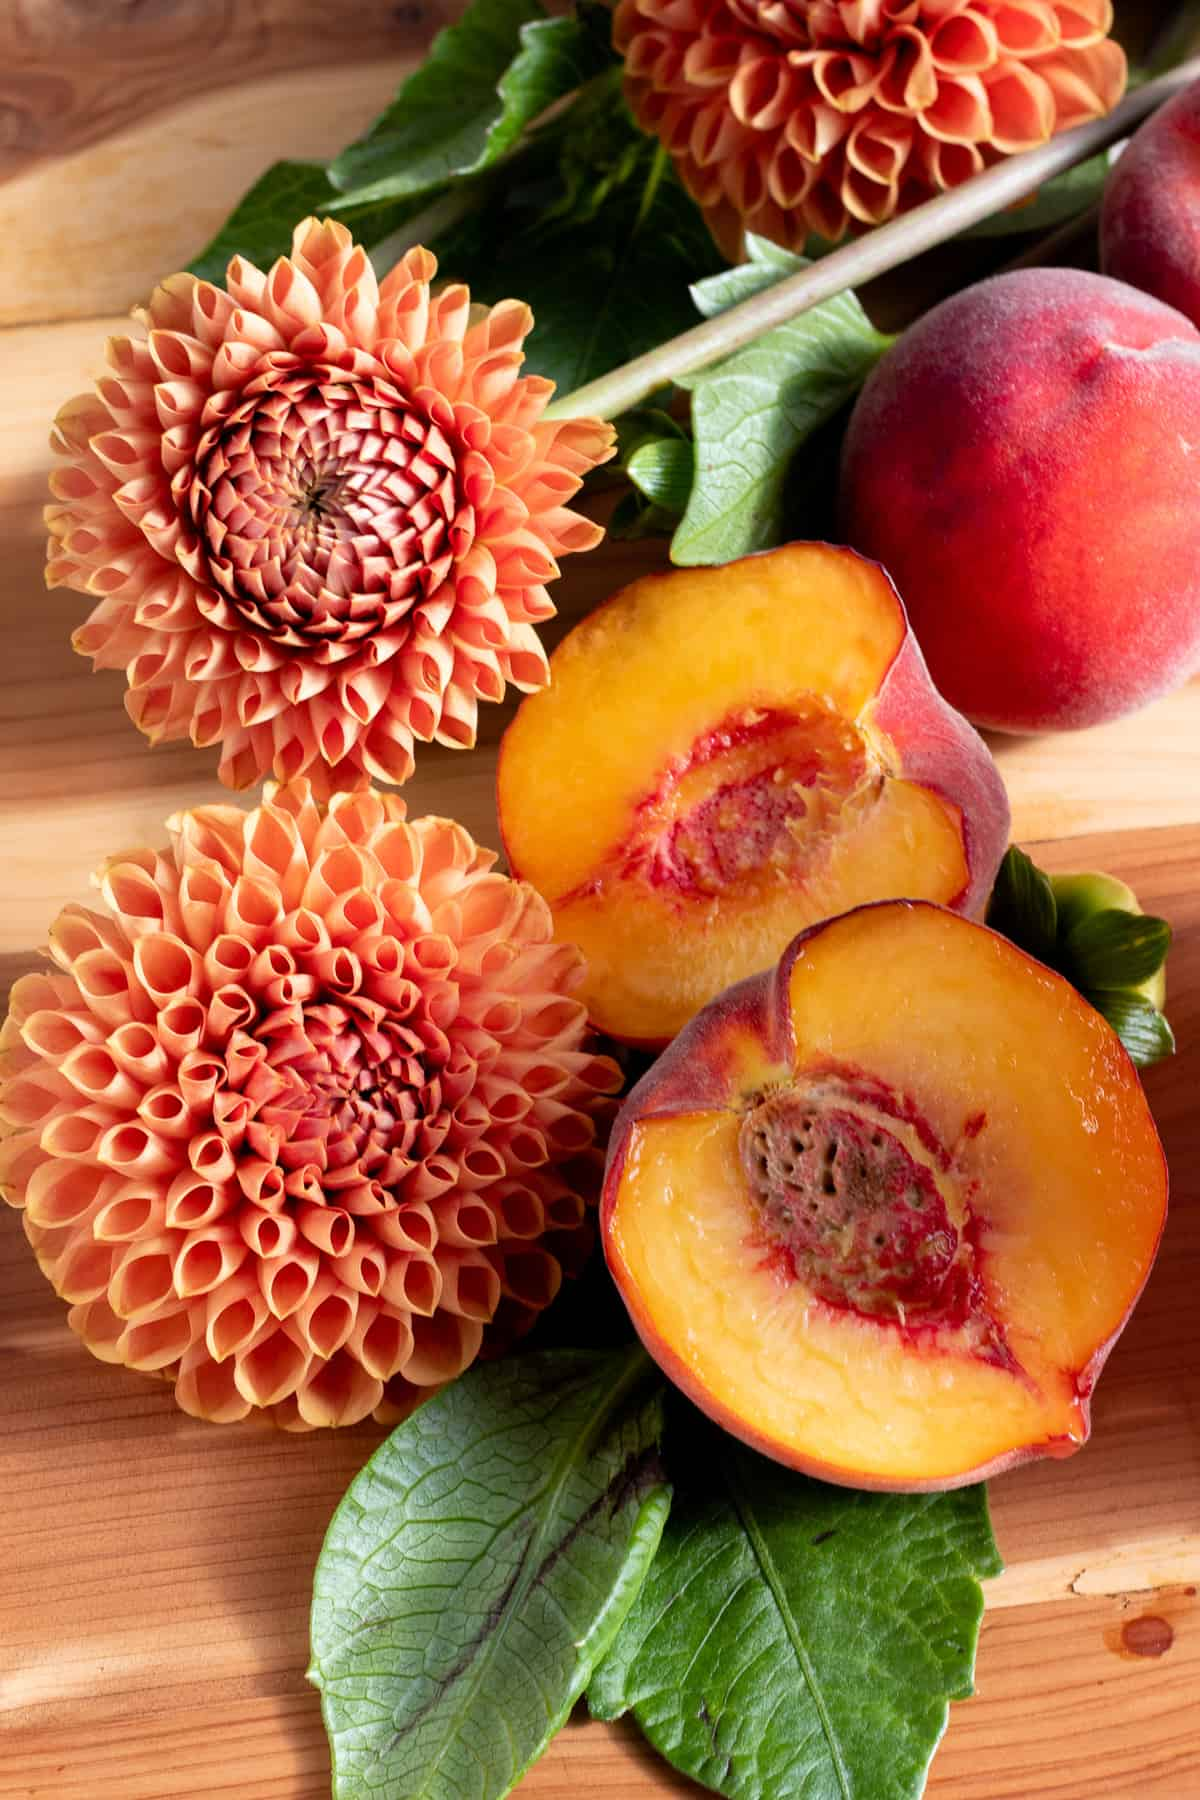 peaches cut in half and flowers on wooden table